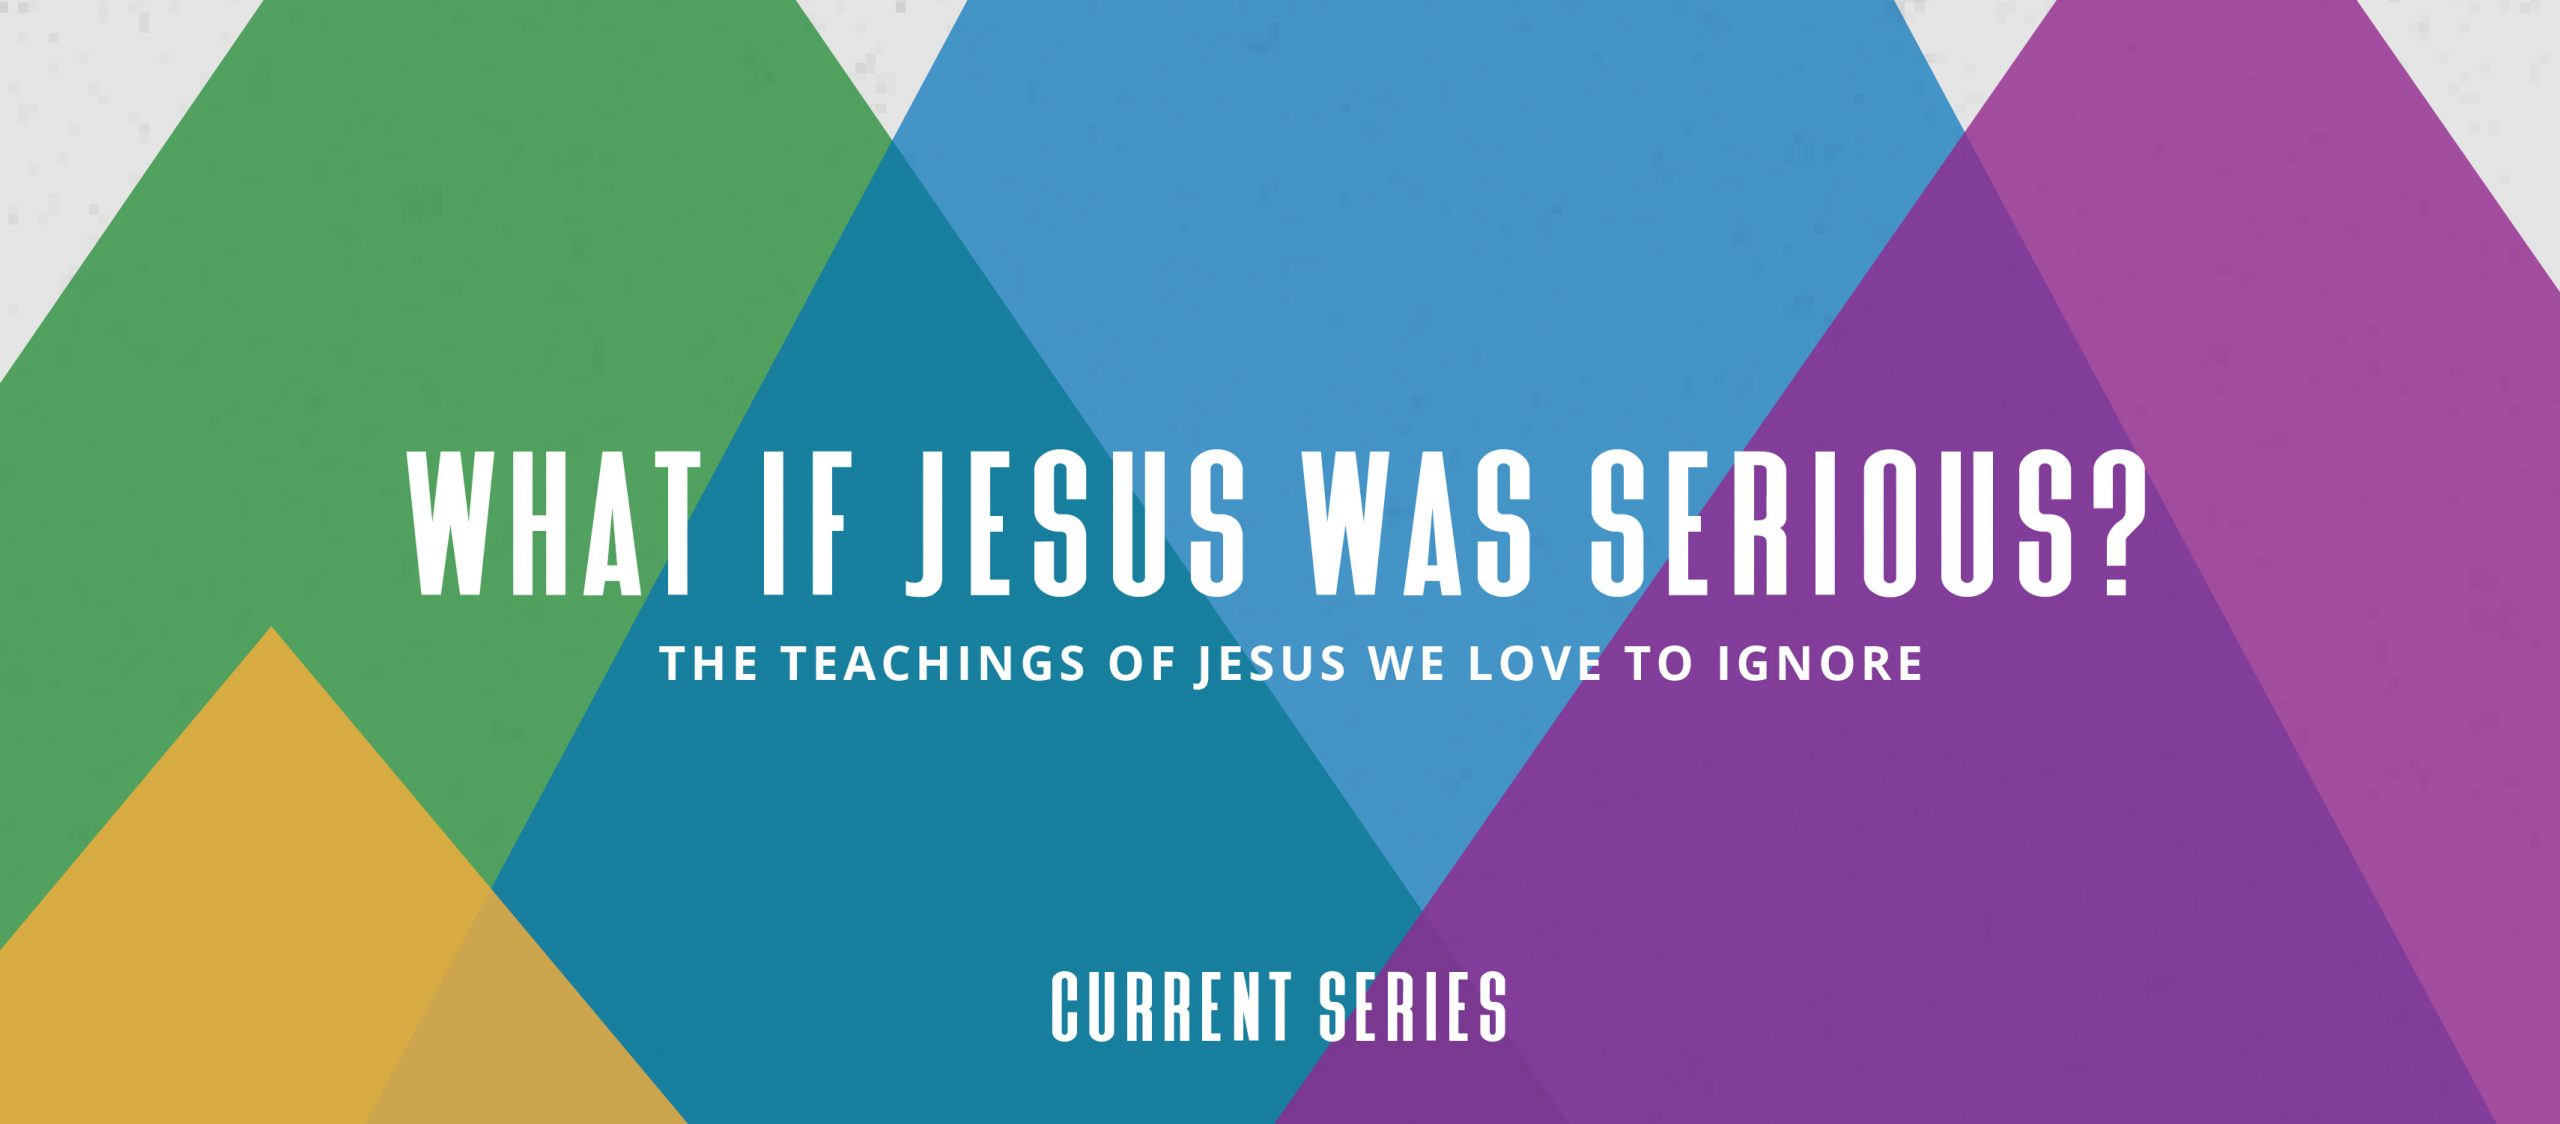 Current Series - What if Jesus Was Serious? Multicolored banner